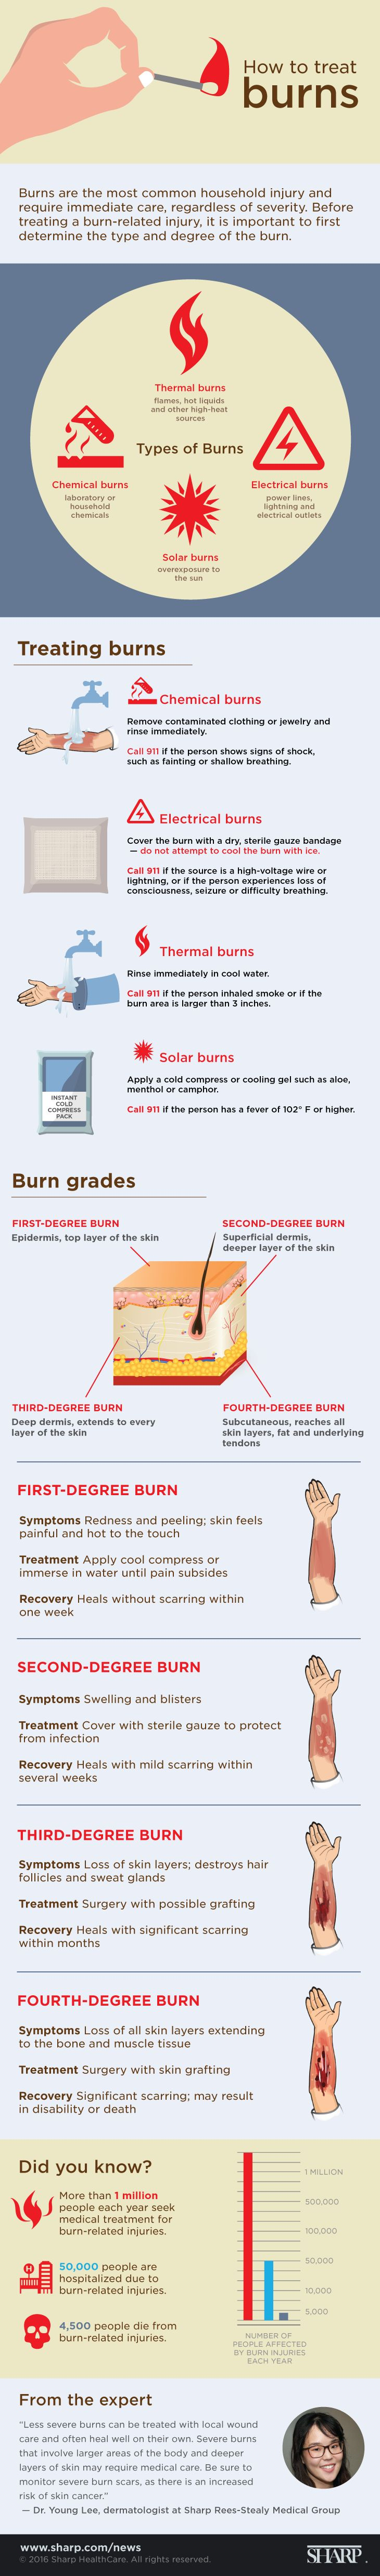 How to Treat Burns Infographic. A very complete infographic with the types of burns that exist according to source such as: thermal, chemical, electrical and solar; and according to degree. Visit our article for more information about how to treat burns: http://insidefirstaid.com/emergencies/how-to-treat-different-types-of-burns #burns #first #aid